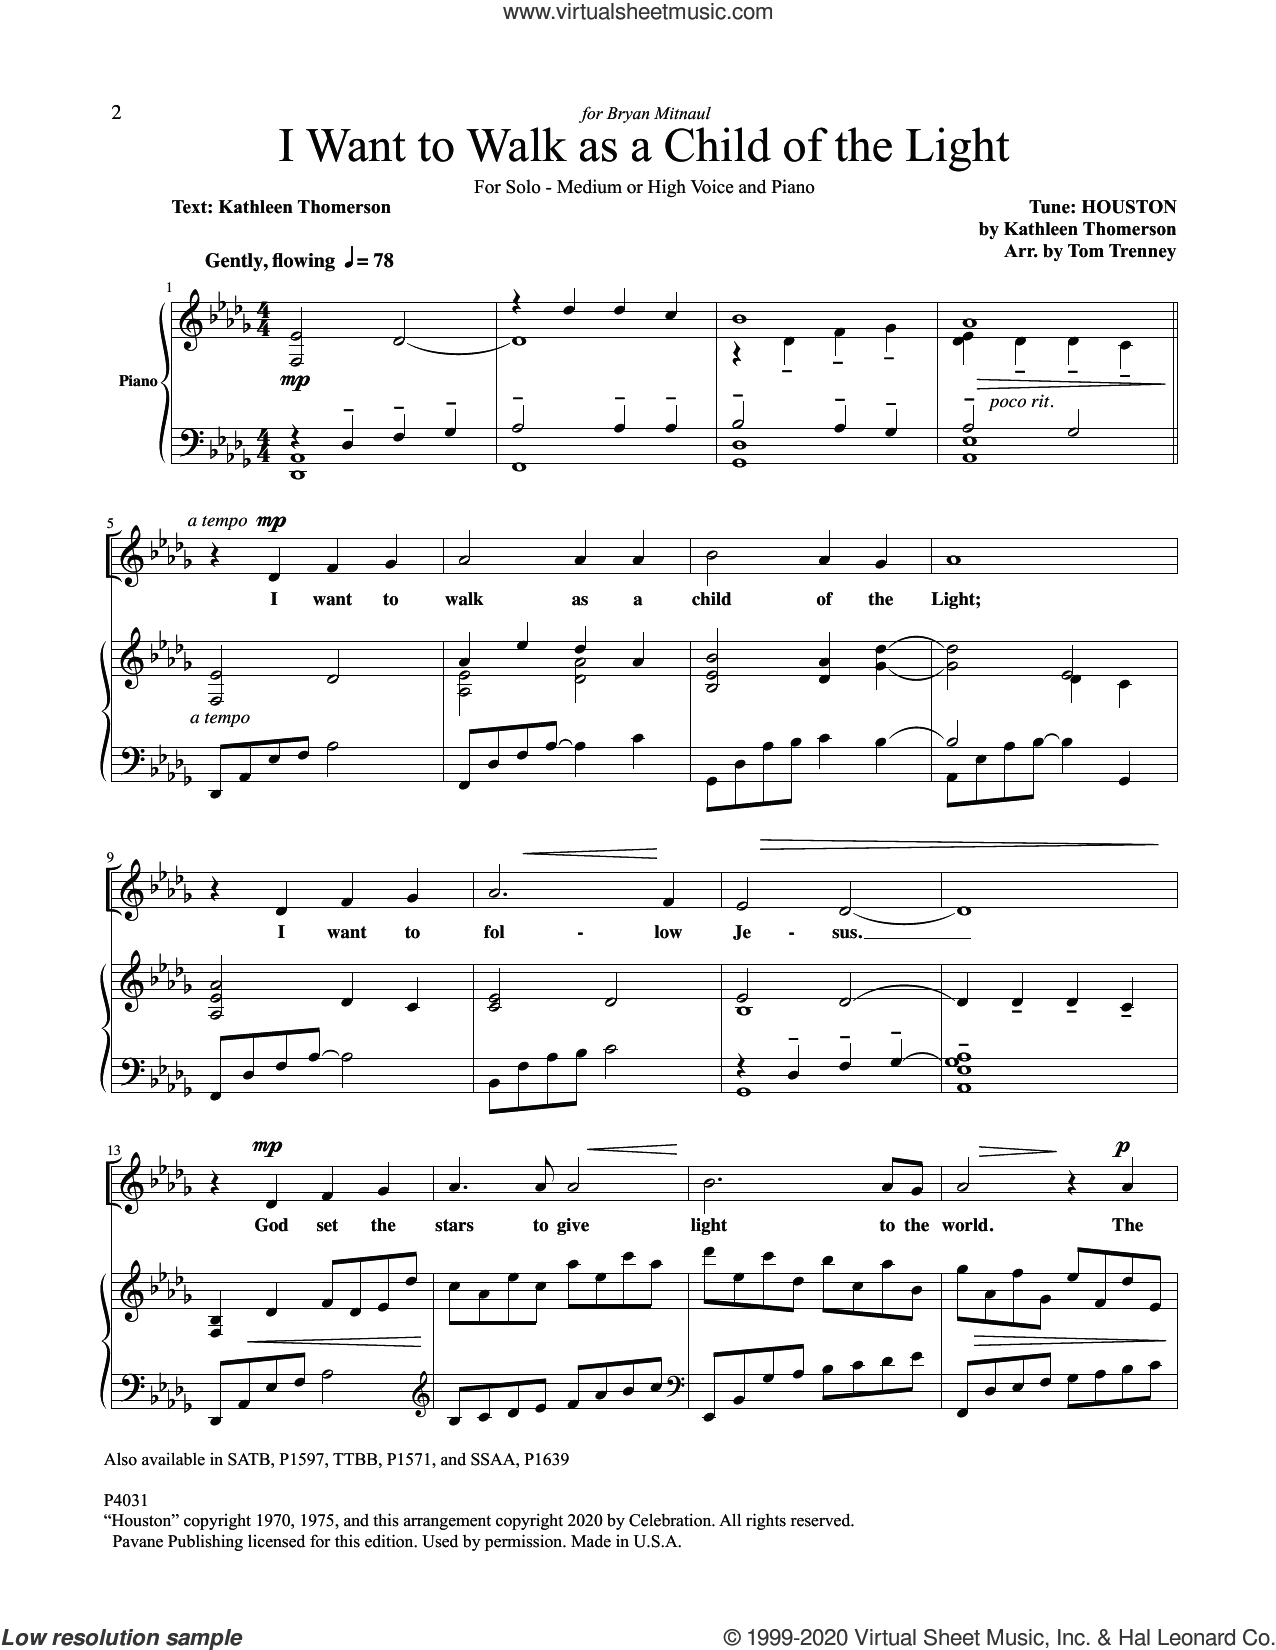 I Want To Walk As A Child Of The Light sheet music for voice and piano by Kathleen Thomerson and Tom Trenney, intermediate skill level